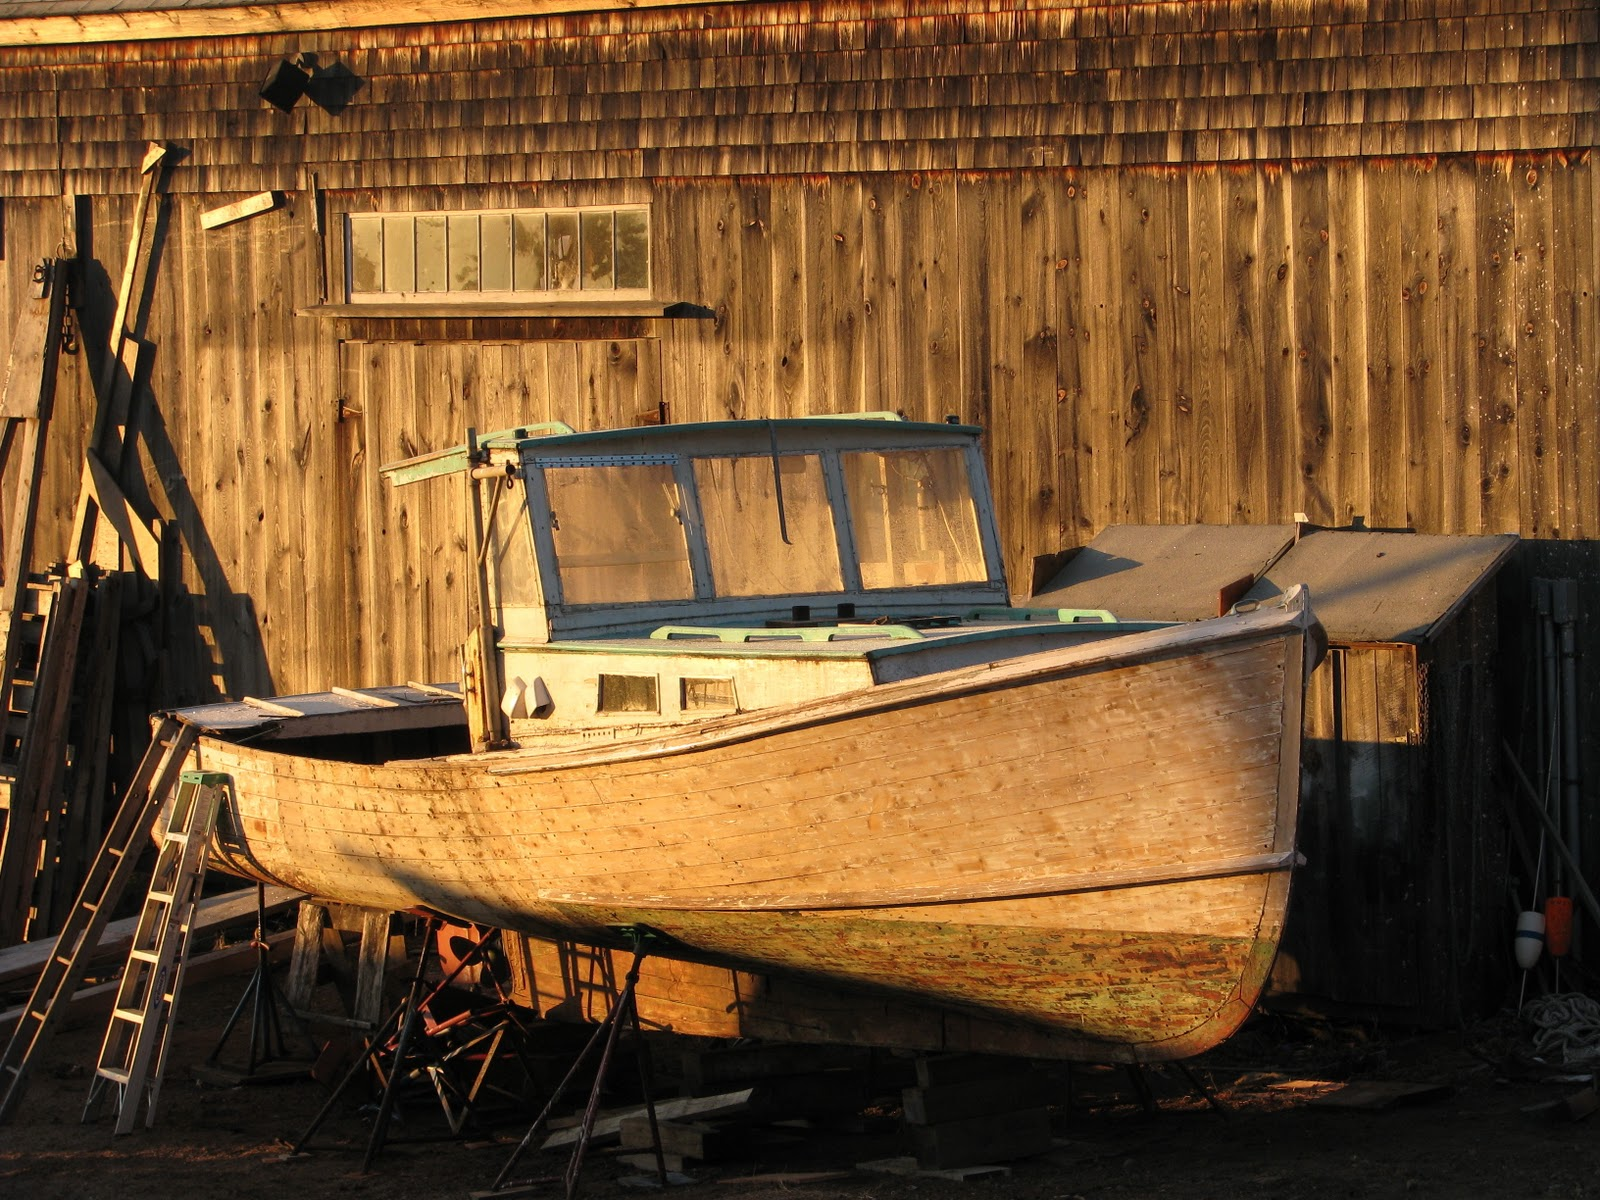 Boatbuilding With Burnham: A Beal Island Lobster Boat Comes to the Yard